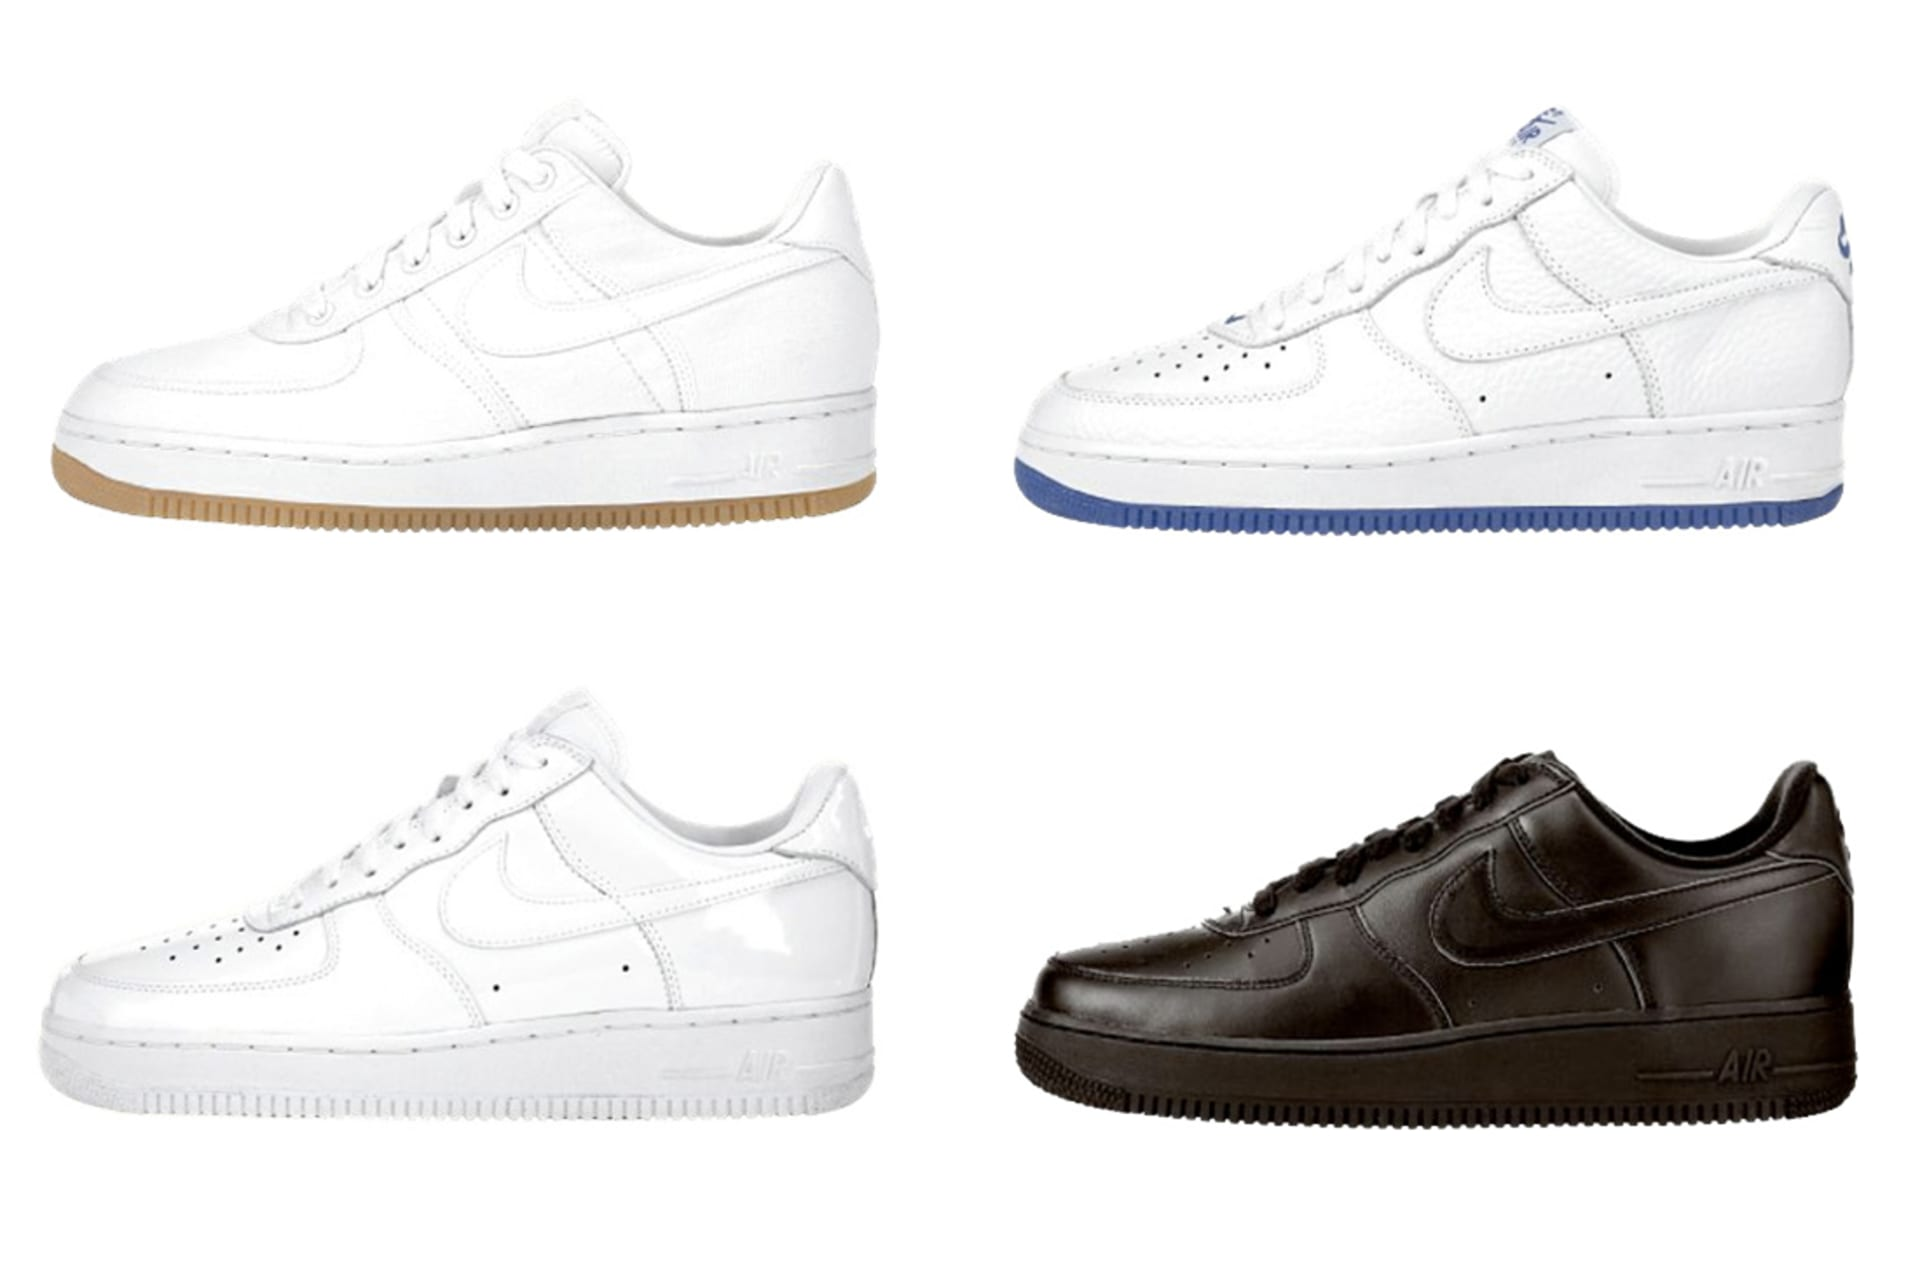 new arrival 77f0a 81bdd 1996 Nike Air Force 1